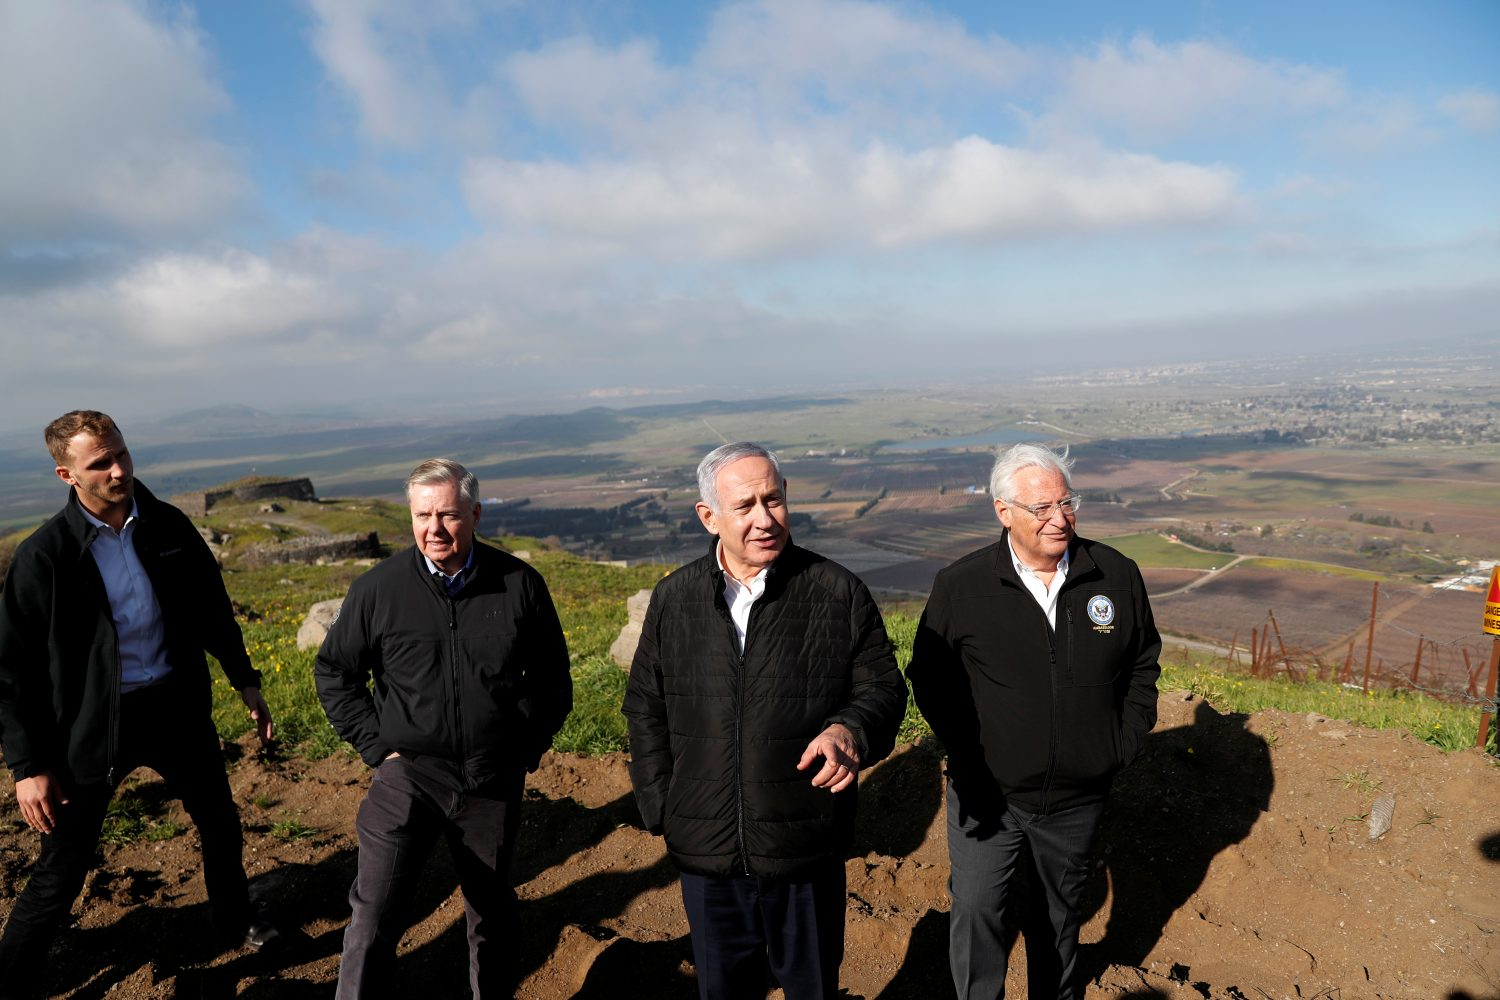 FILE PHOTO: Israeli Prime Minister Benjamin Netanyahu, U.S. Republican Senator Lindsey Graham and U.S. Ambassador to Israel David Friedman visit the border between Israel and Syria in the Israeli-occupied Golan Heights, March 11, 2019 REUTERS/Ronen Zvulun/File Photo